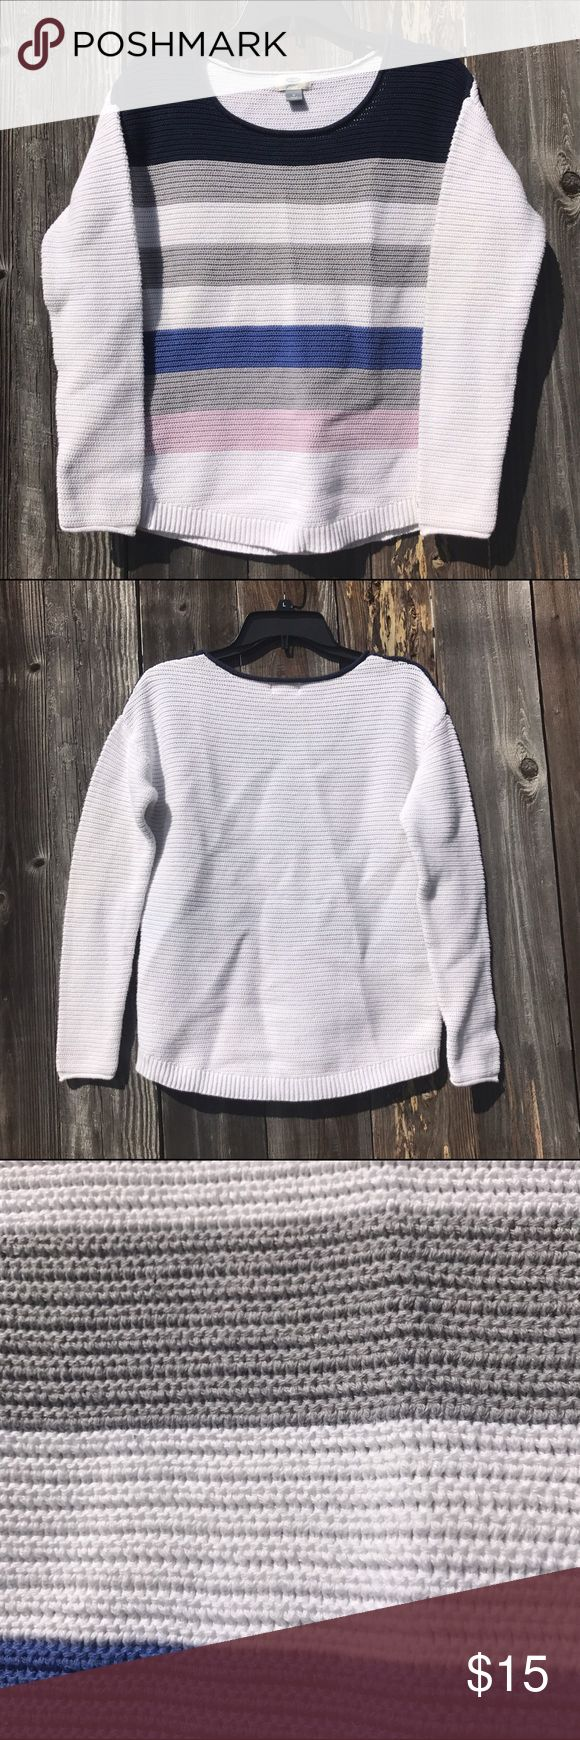 New Ild Navy Wide Stripe Sweater Great sweater for Spring. In great gently used condition. Old Navy Sweaters Crew & Scoop Necks